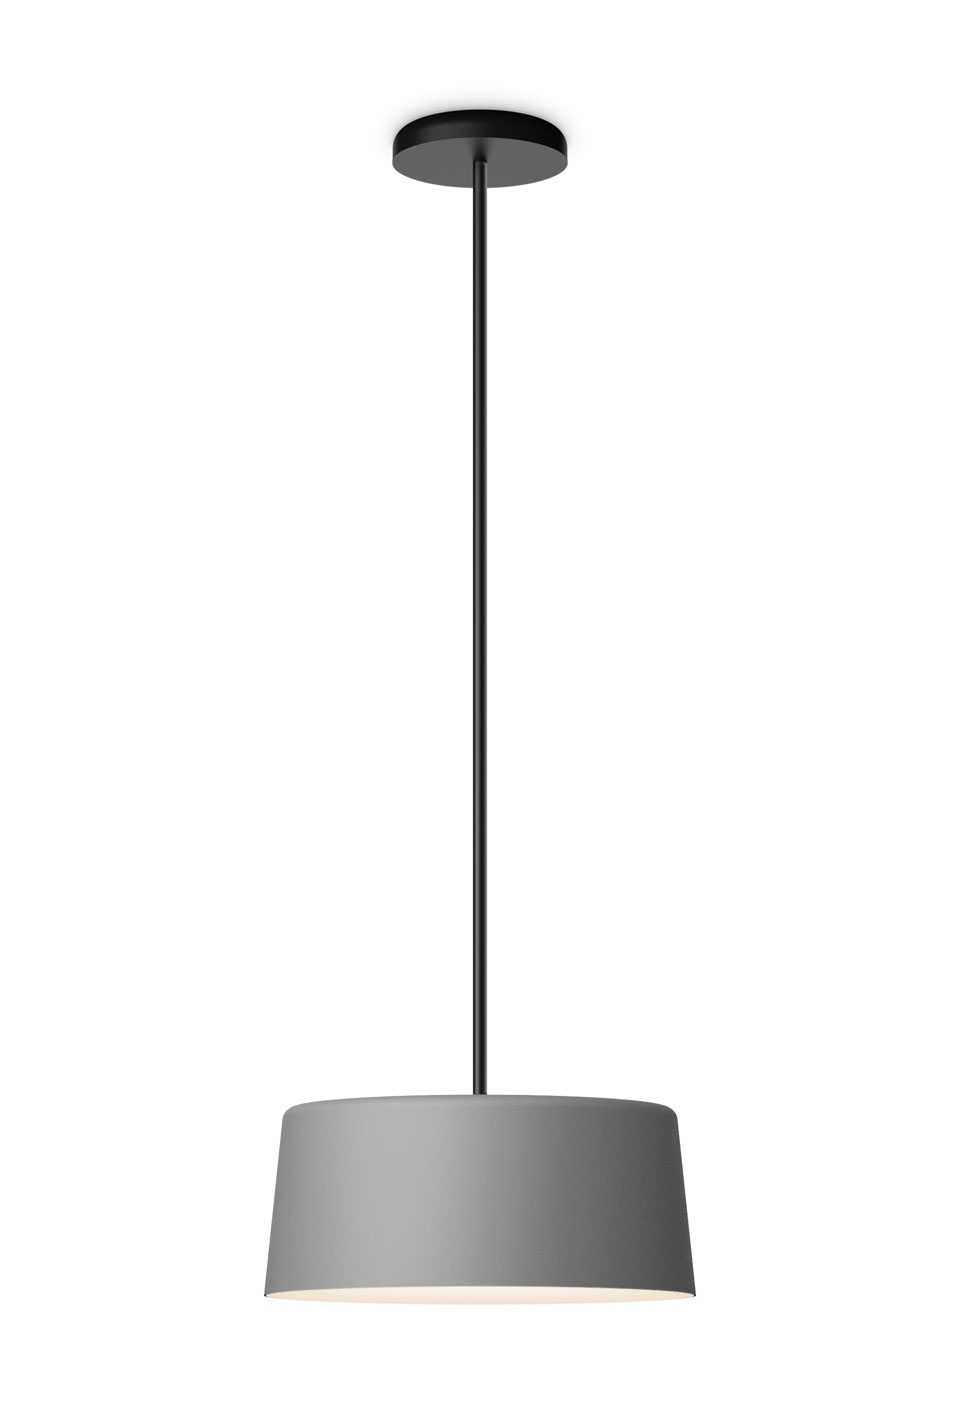 Vibia The Edit - Introducing Tube Personalization